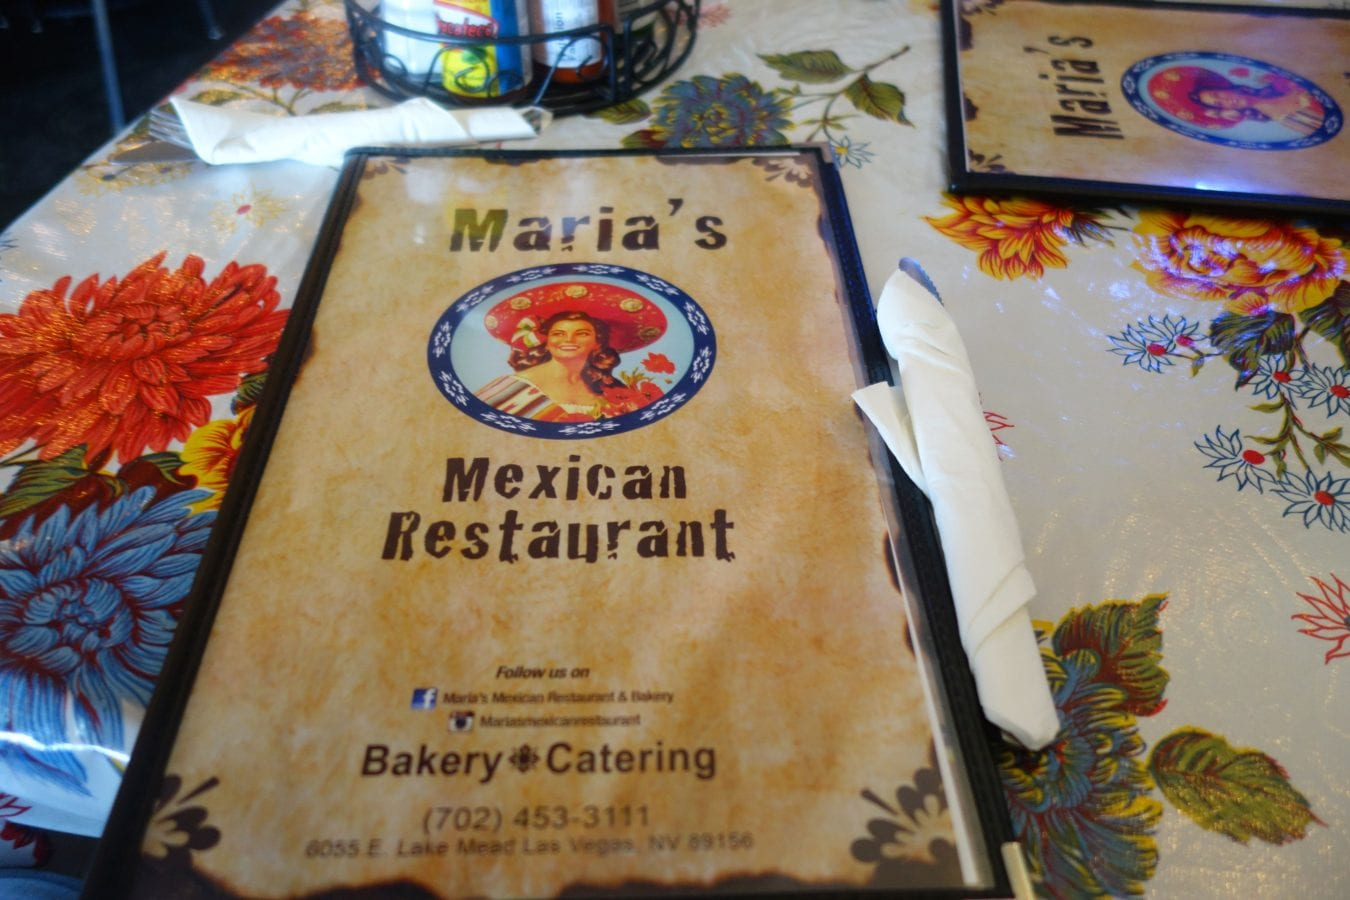 Marias Küche Catering Maria S Mexican Restaurant Bakery And Catering Las Vegas Nv